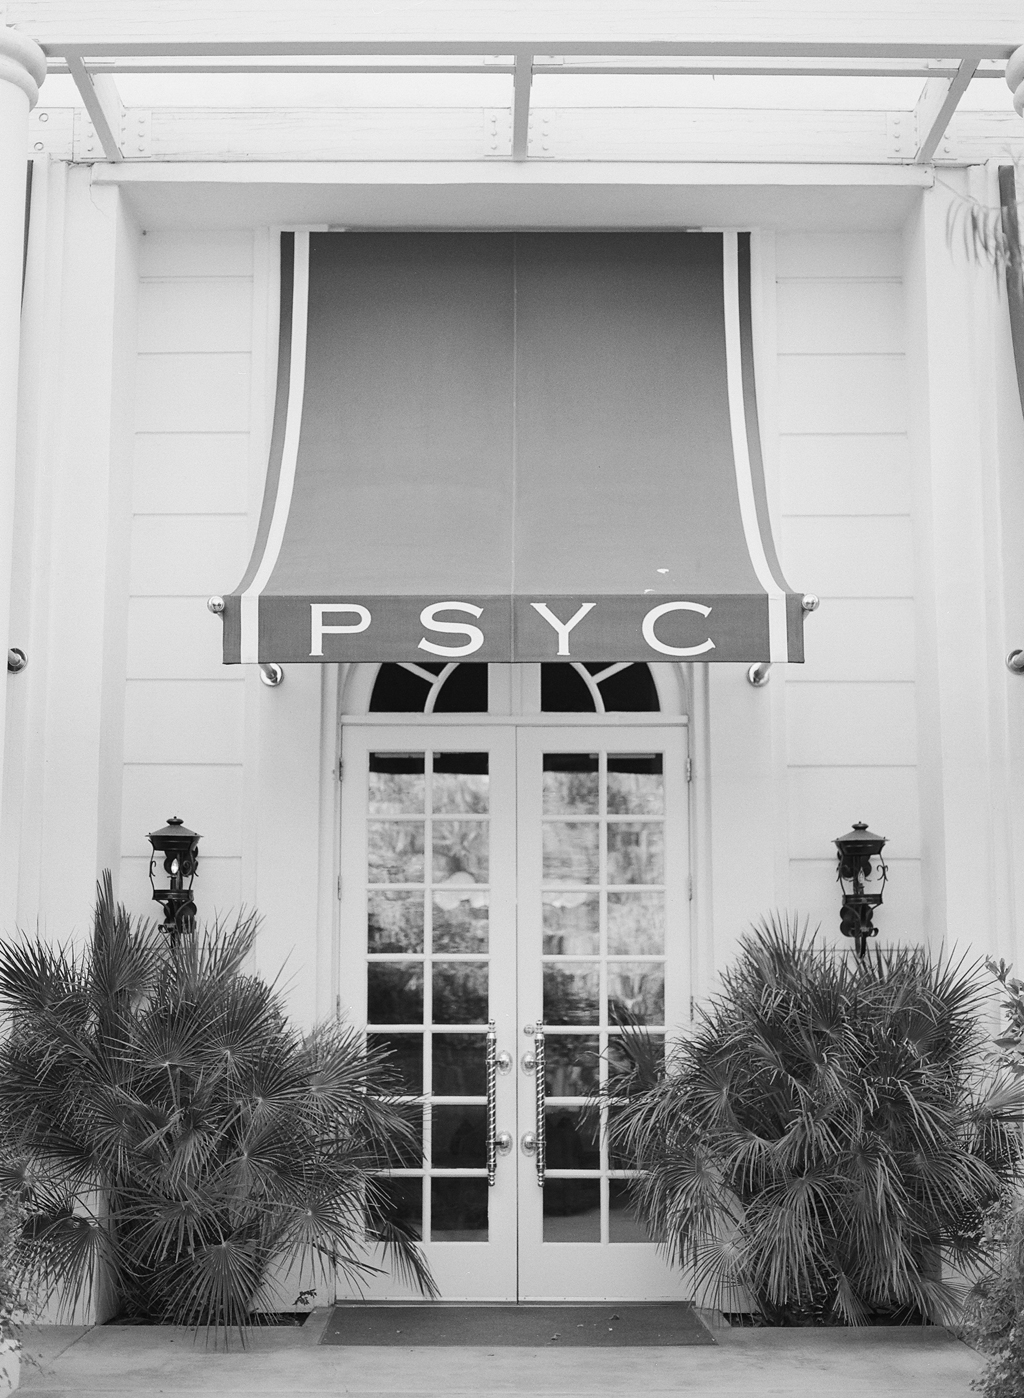 Palm Springs Yacht Club, PSYC, at the Parker Palm Springs.